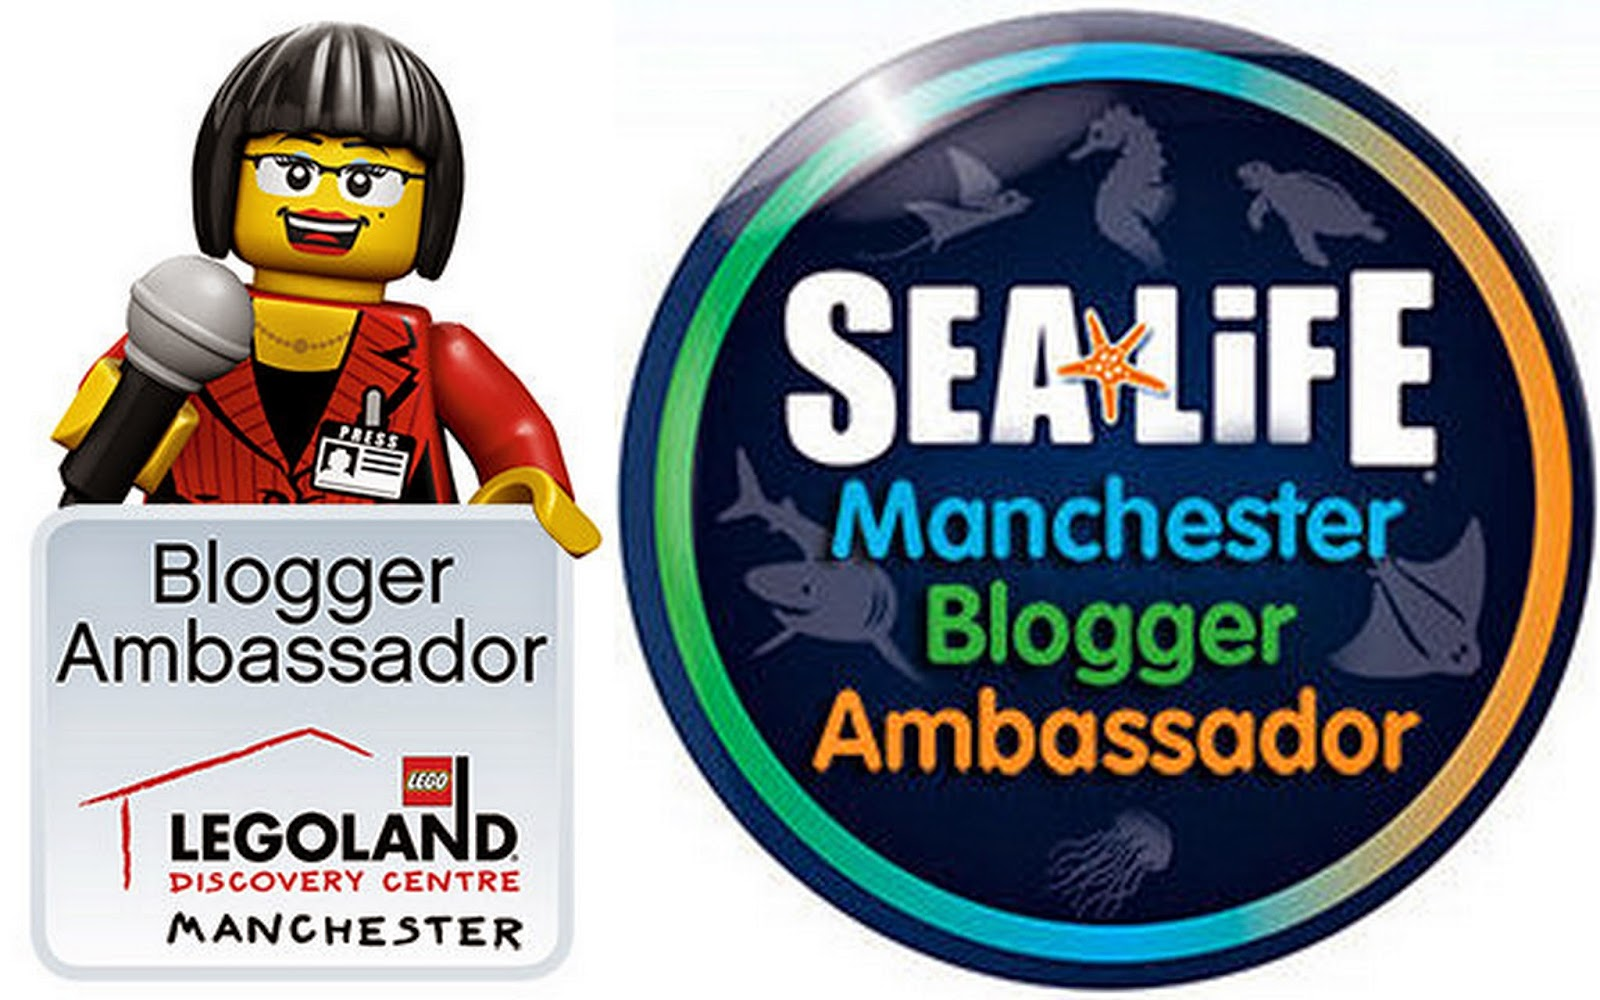 The Brick Castle are Ambassadors for LEGOLAND Discovery Centre and SeaLife, Manchester